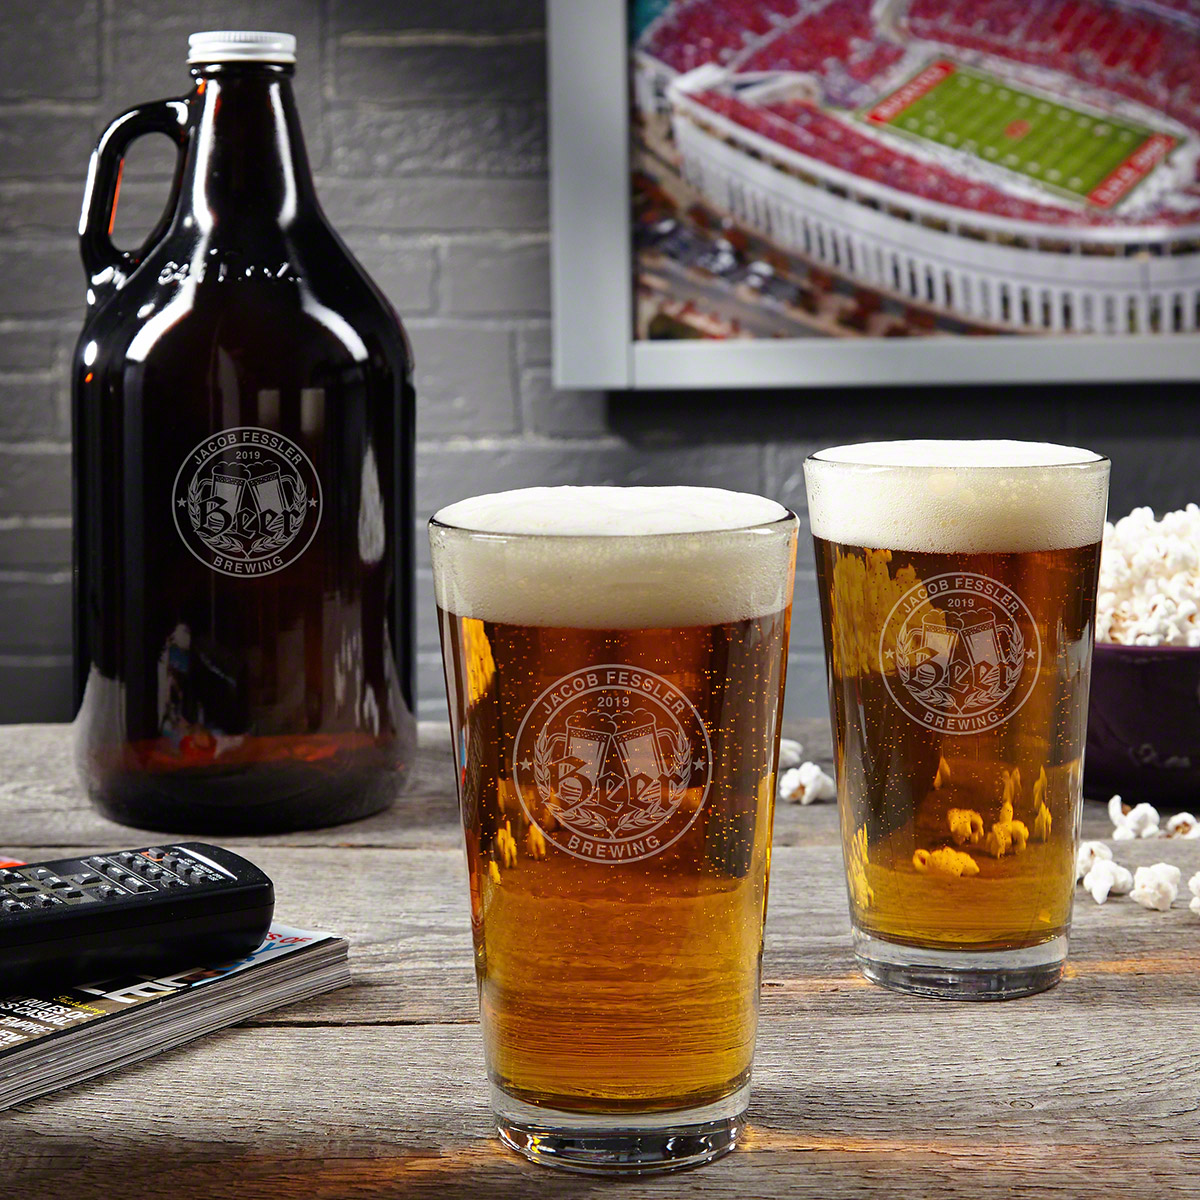 Bierhaus Monogrammed Beer Growler Gift Set